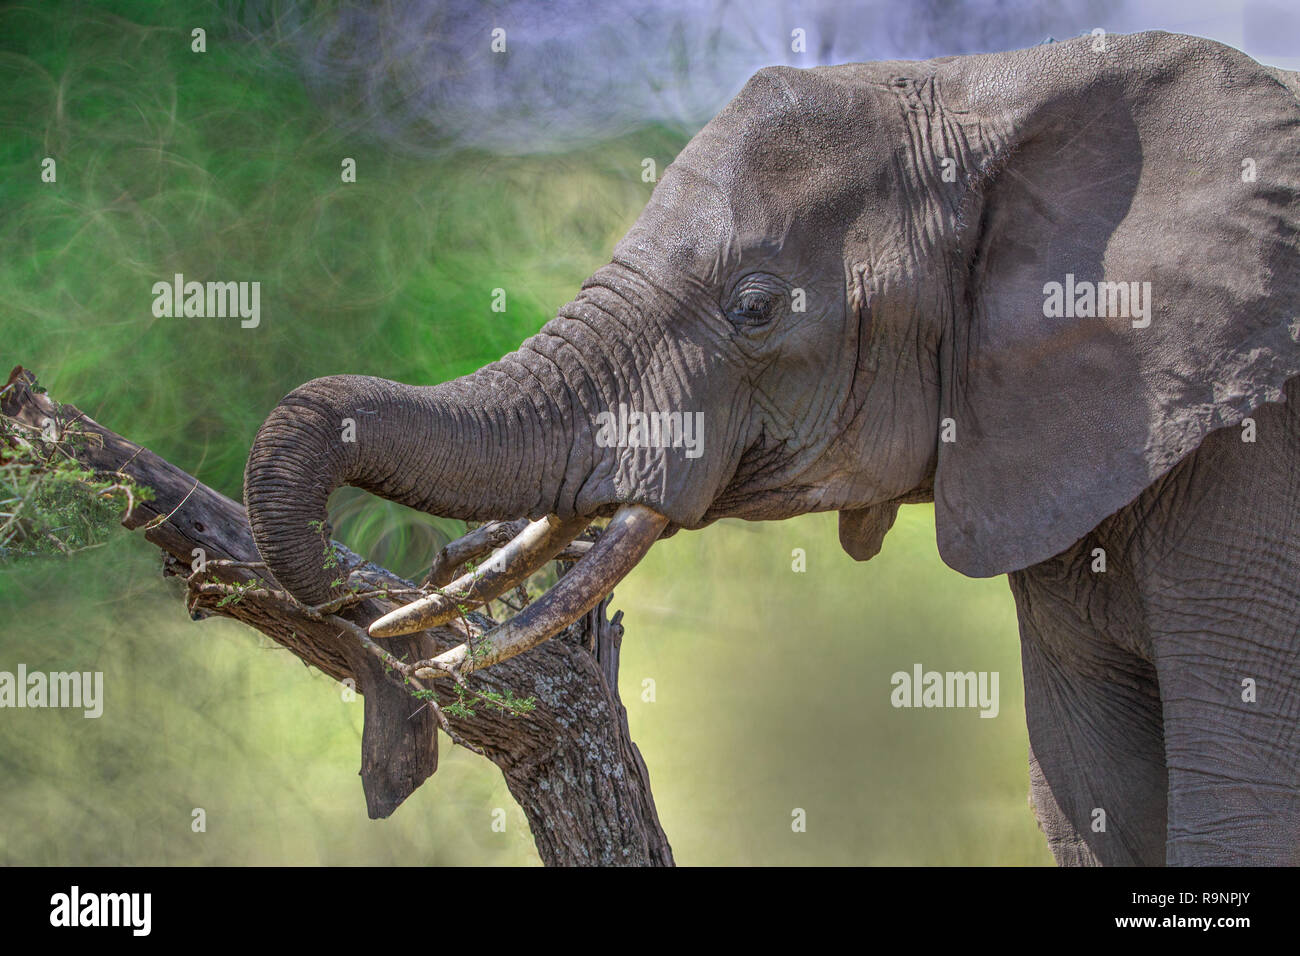 African elephant with tusks - Stock Image